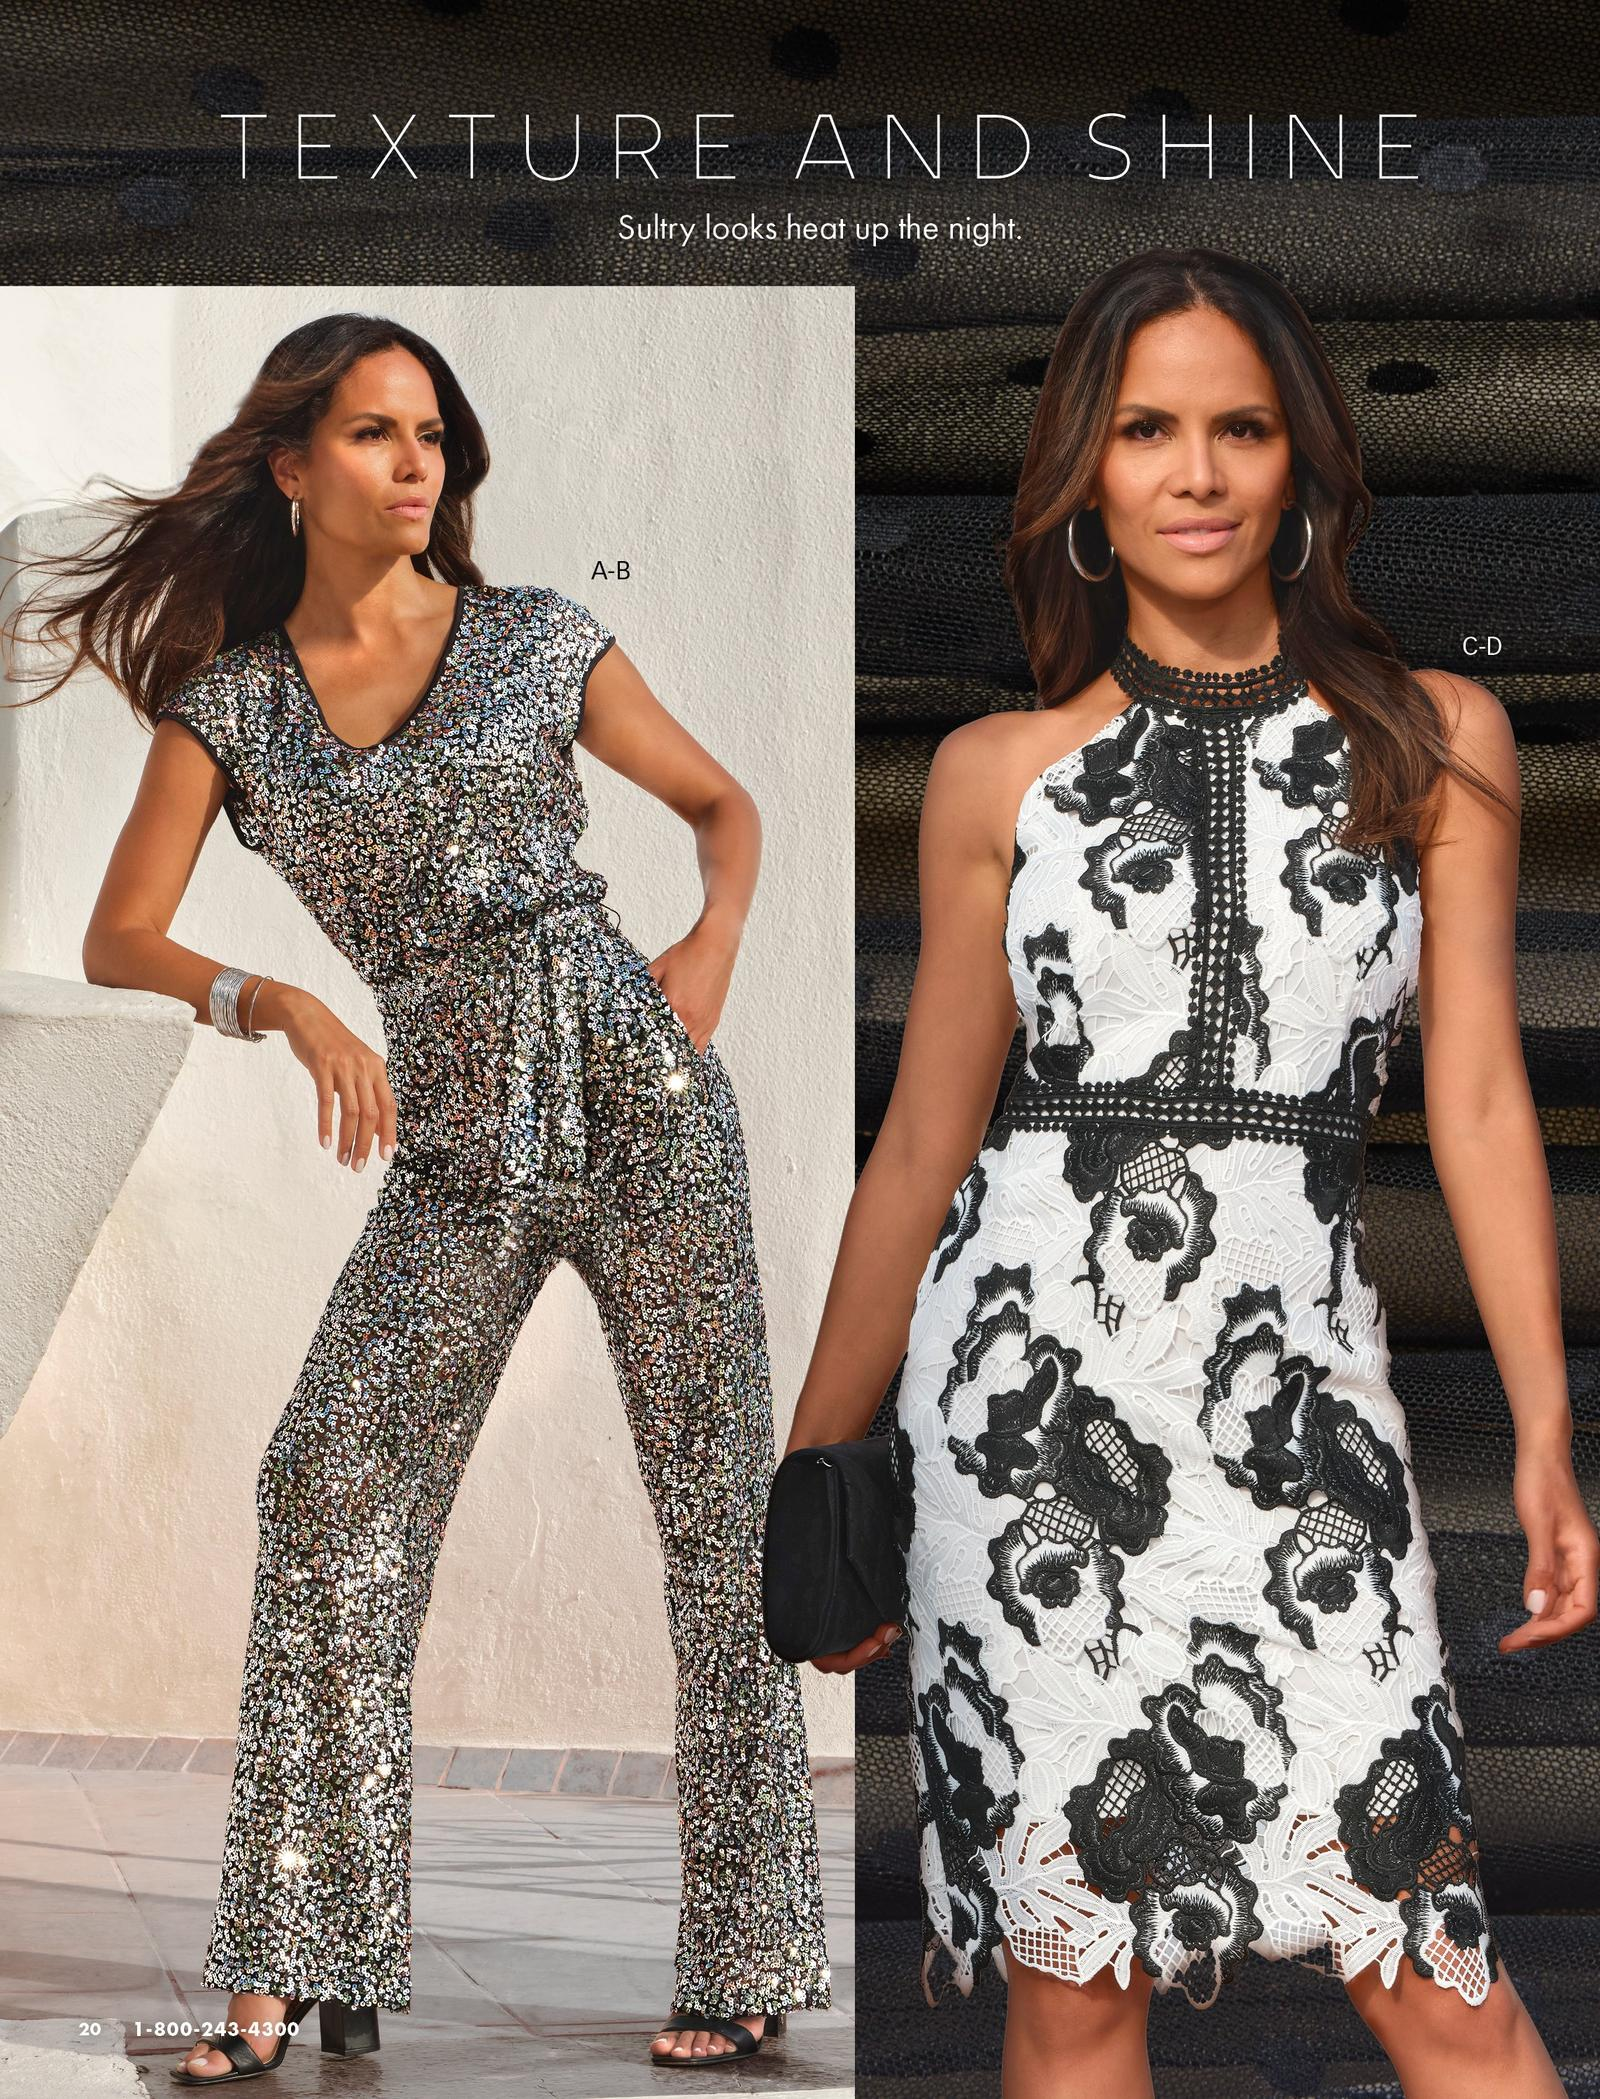 left model wearing a sequin embellished short-sleeve tie-waist jumpsuit and black heels. right model wearing a white and black lace high-neck sleeveless sheath dress, silver hoop earrings, and holding a black clutch